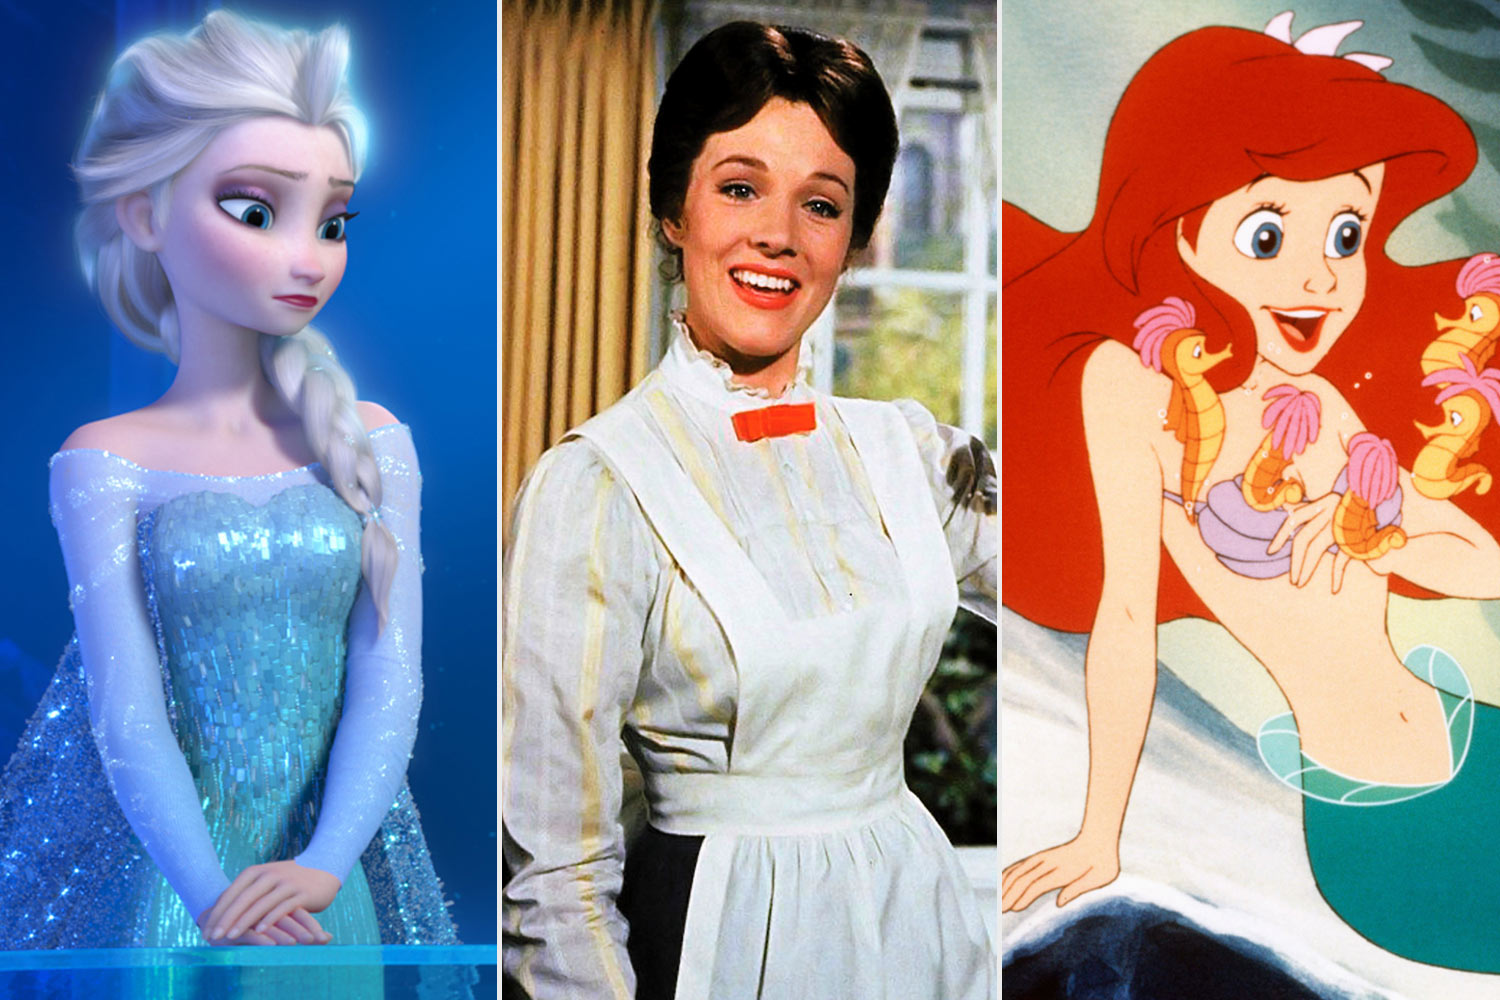 Frozen, Mary Poppins, and The Little Mermaid